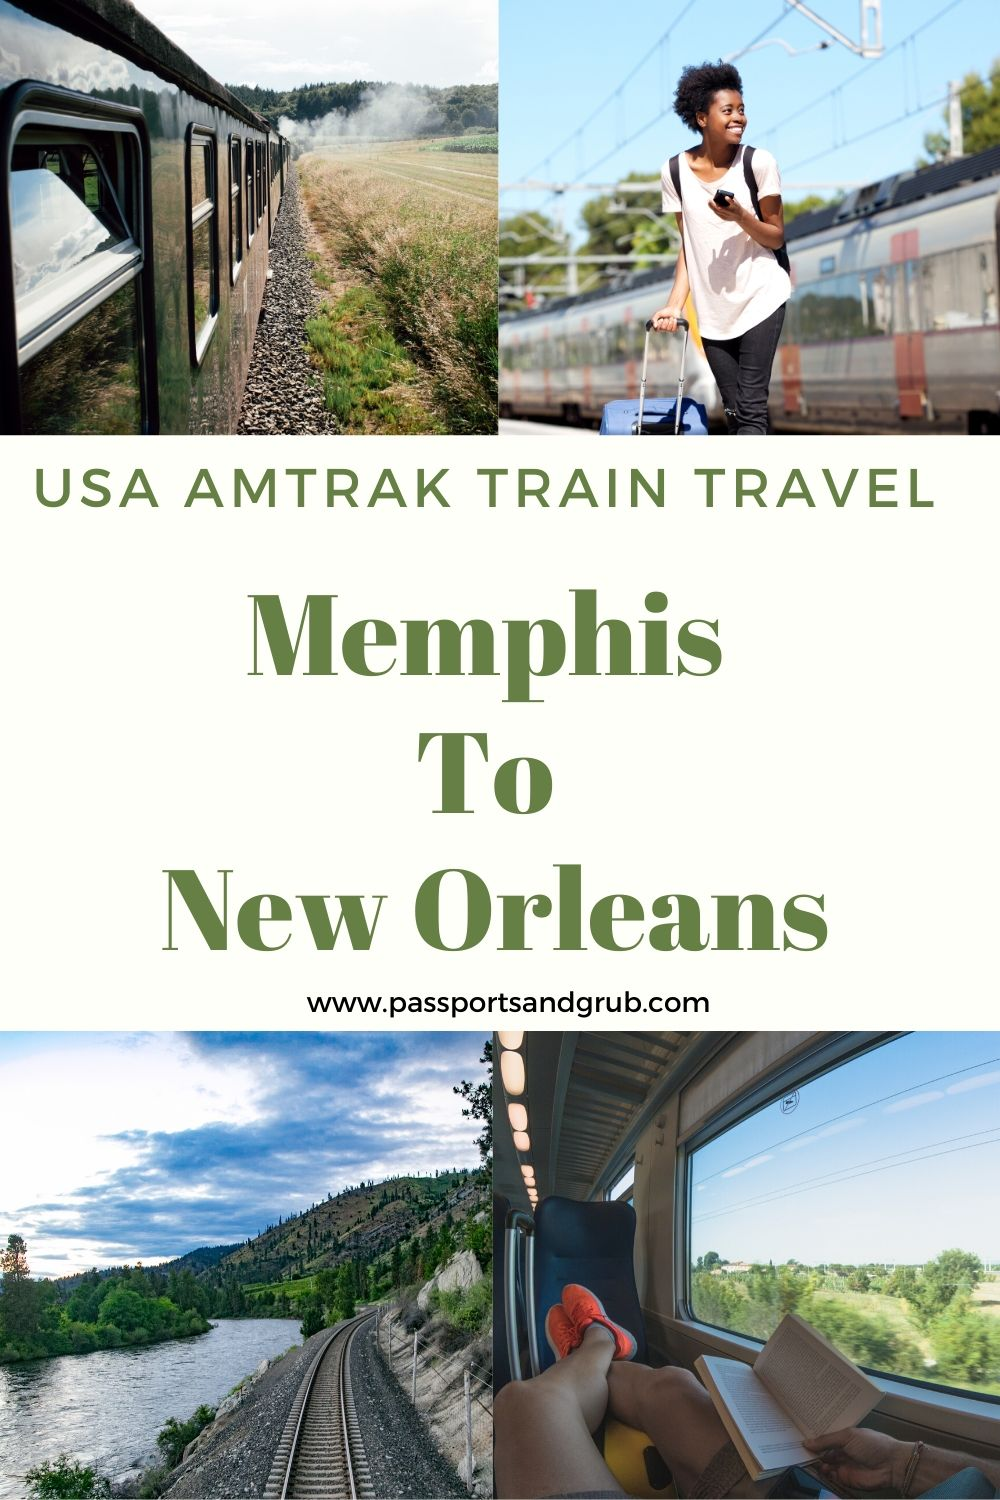 Train travel - Memphis to New orleans